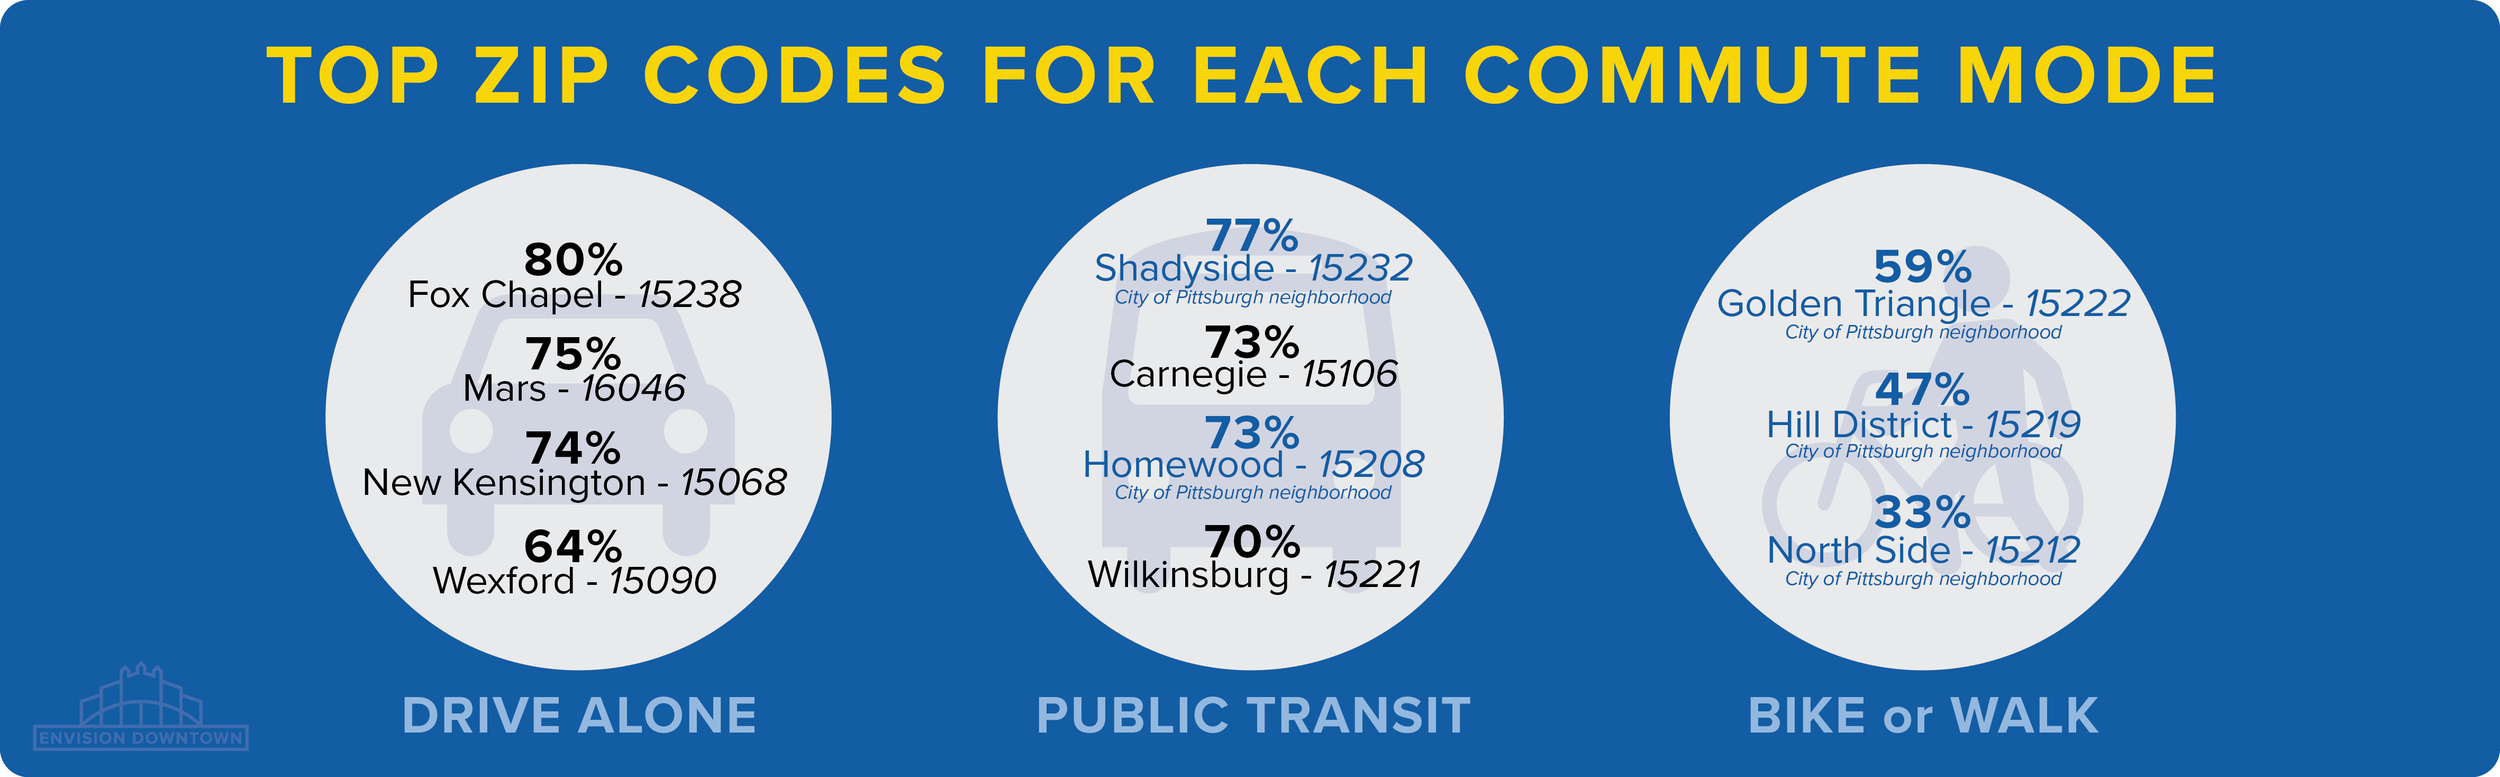 these numbers reflect the percentage of respondents from that zip Code who choose that particular mode OVER OTHERS to commute on a typical weekday